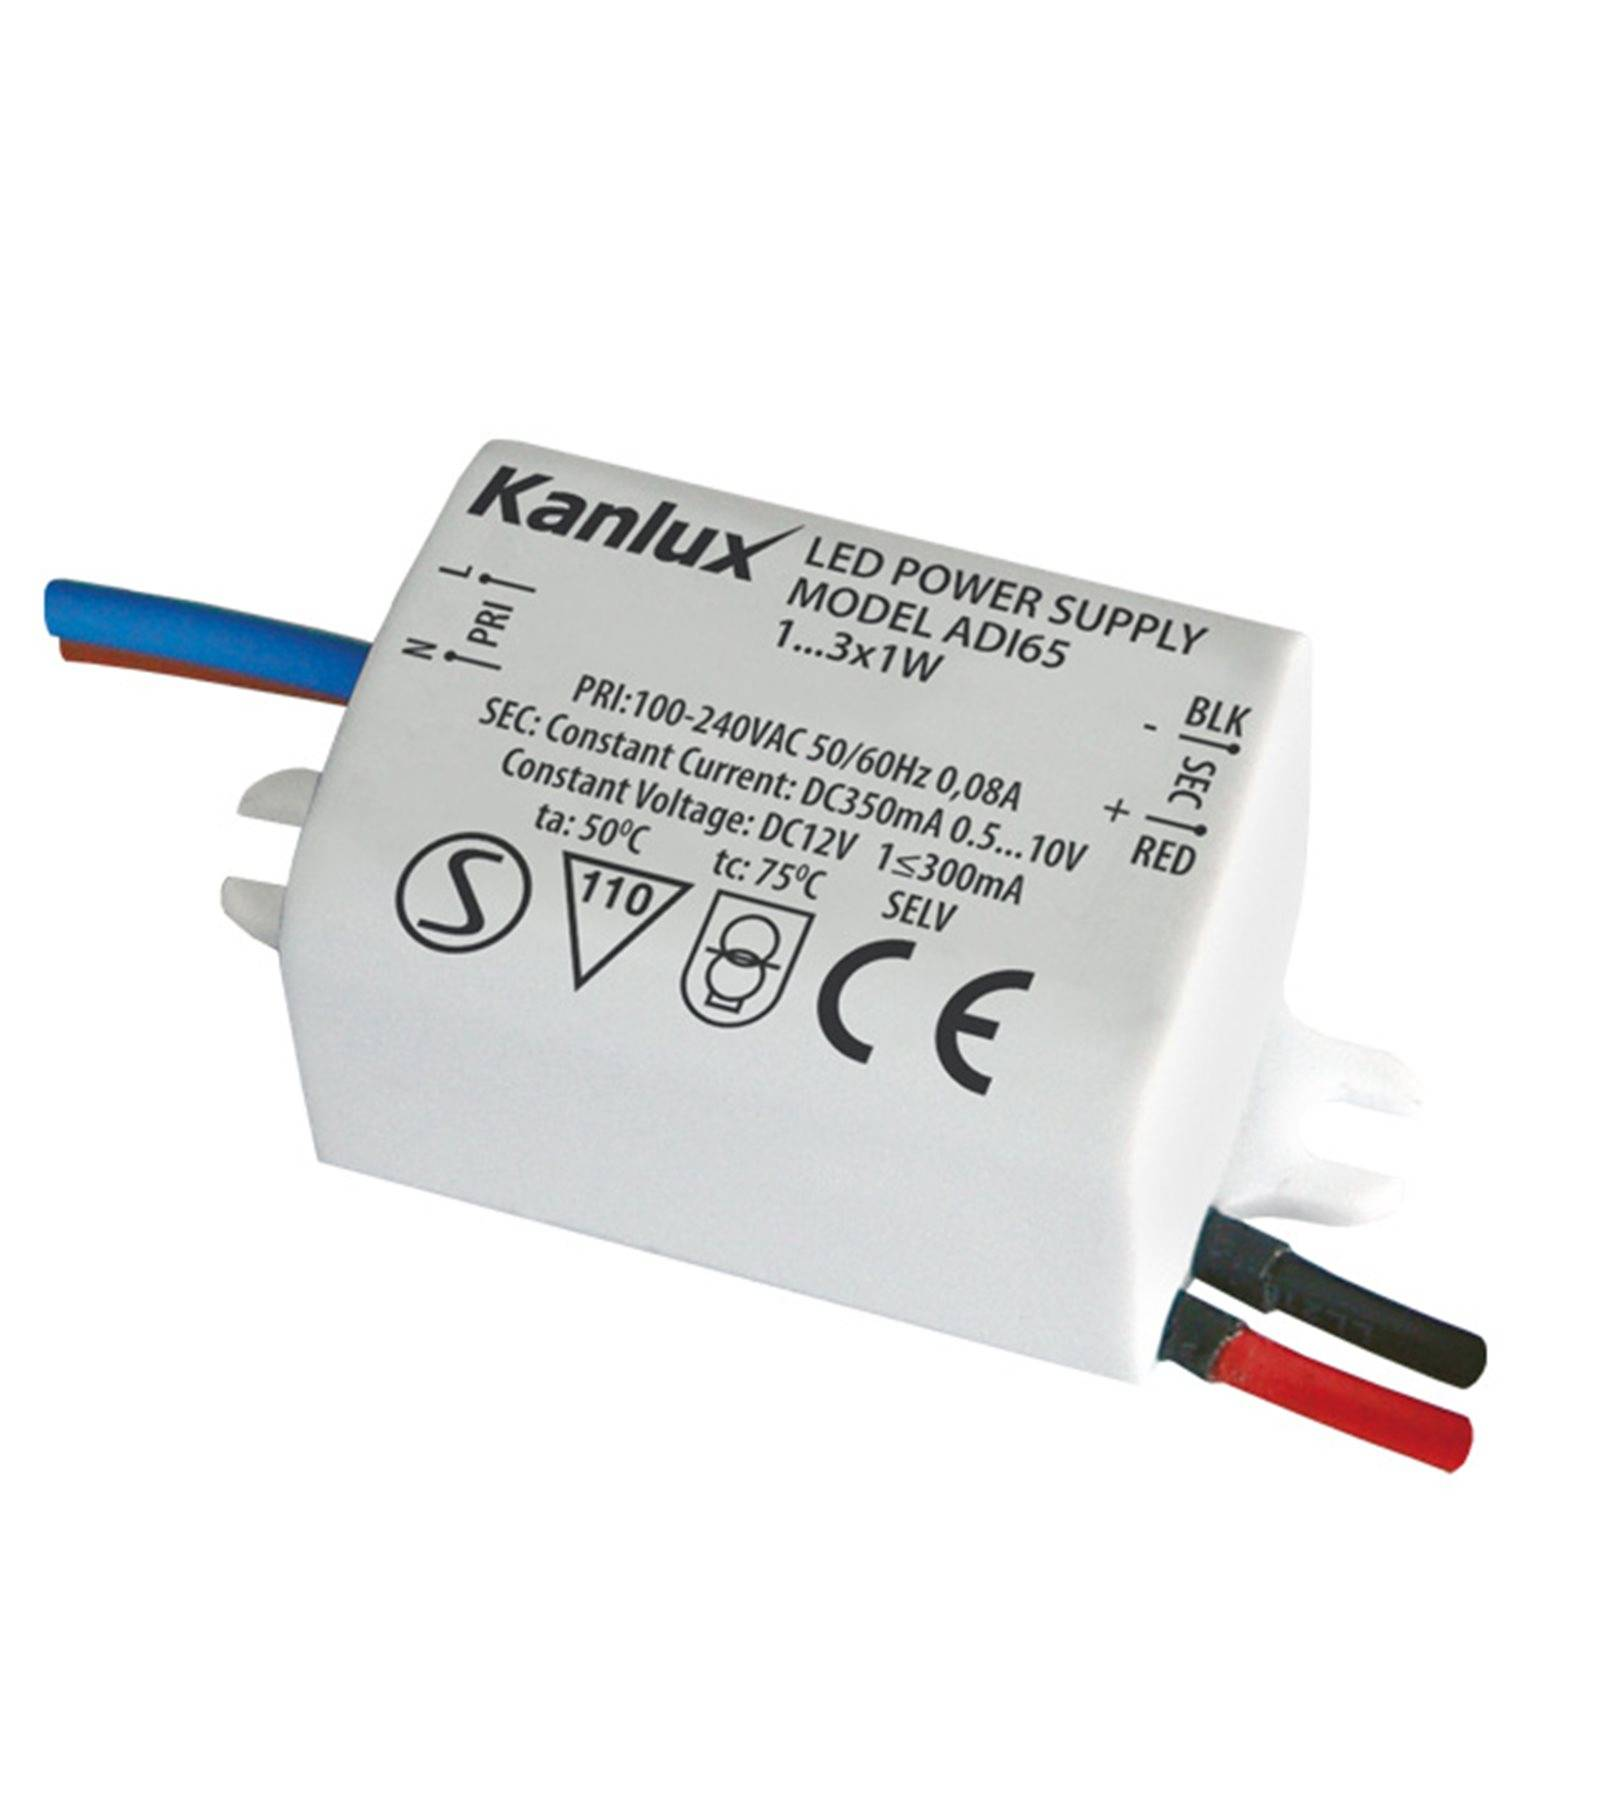 Transformateur 3x1ww Électronique 240v Ip20 Kanlux Dc 100 Adi Led À OkTPXuZi